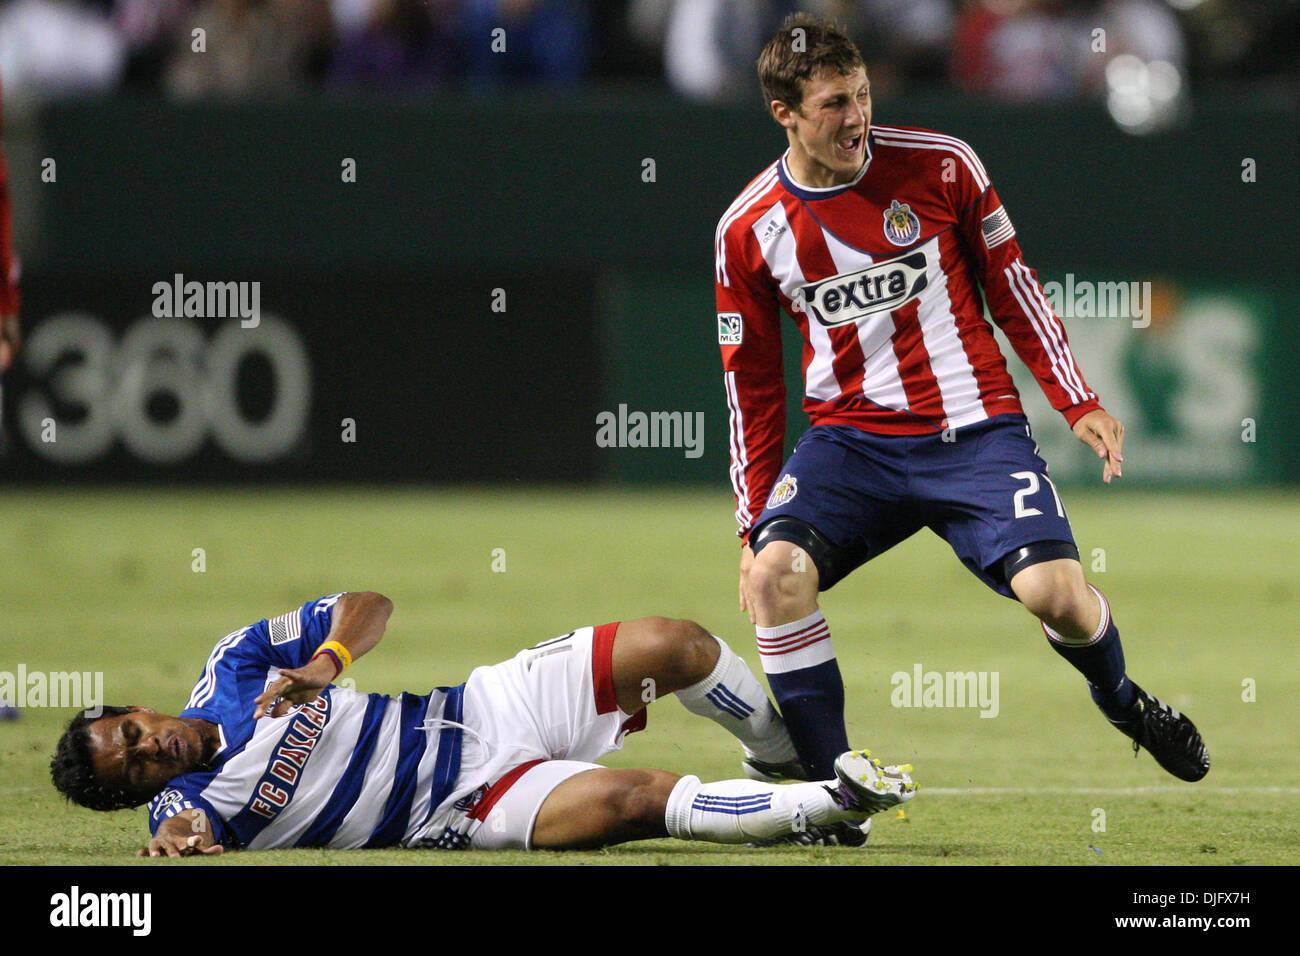 5a4cac8cd Fouls Dallas Stock Photos   Fouls Dallas Stock Images - Alamy